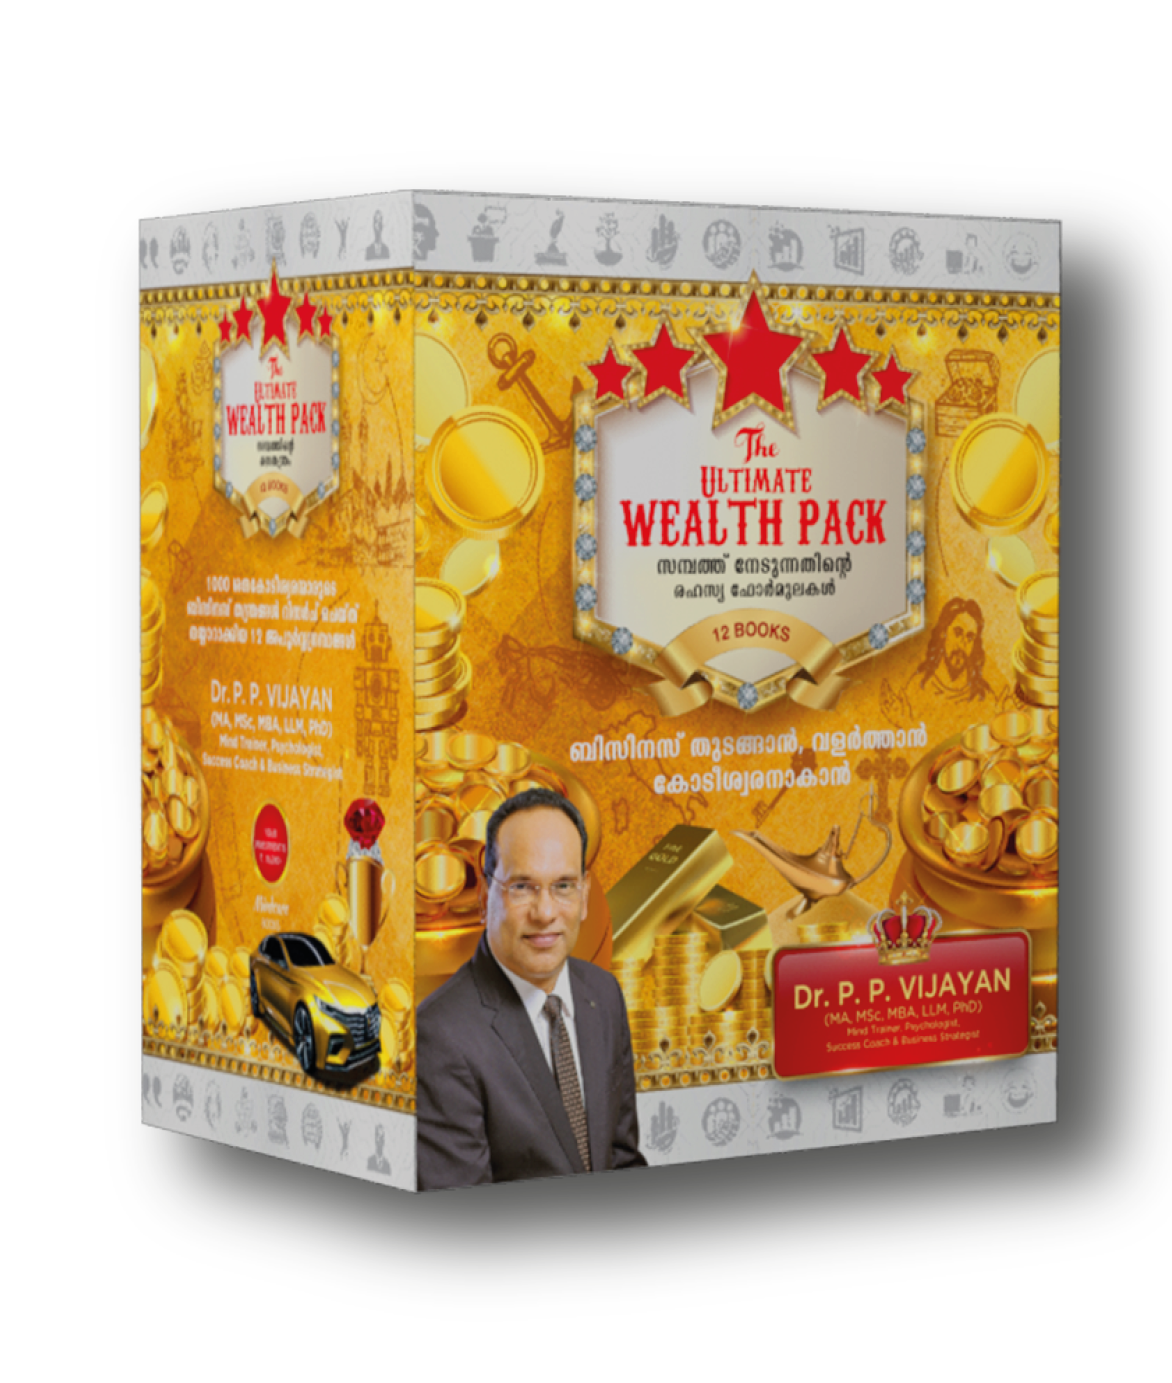 The Ultimate Wealth Pack